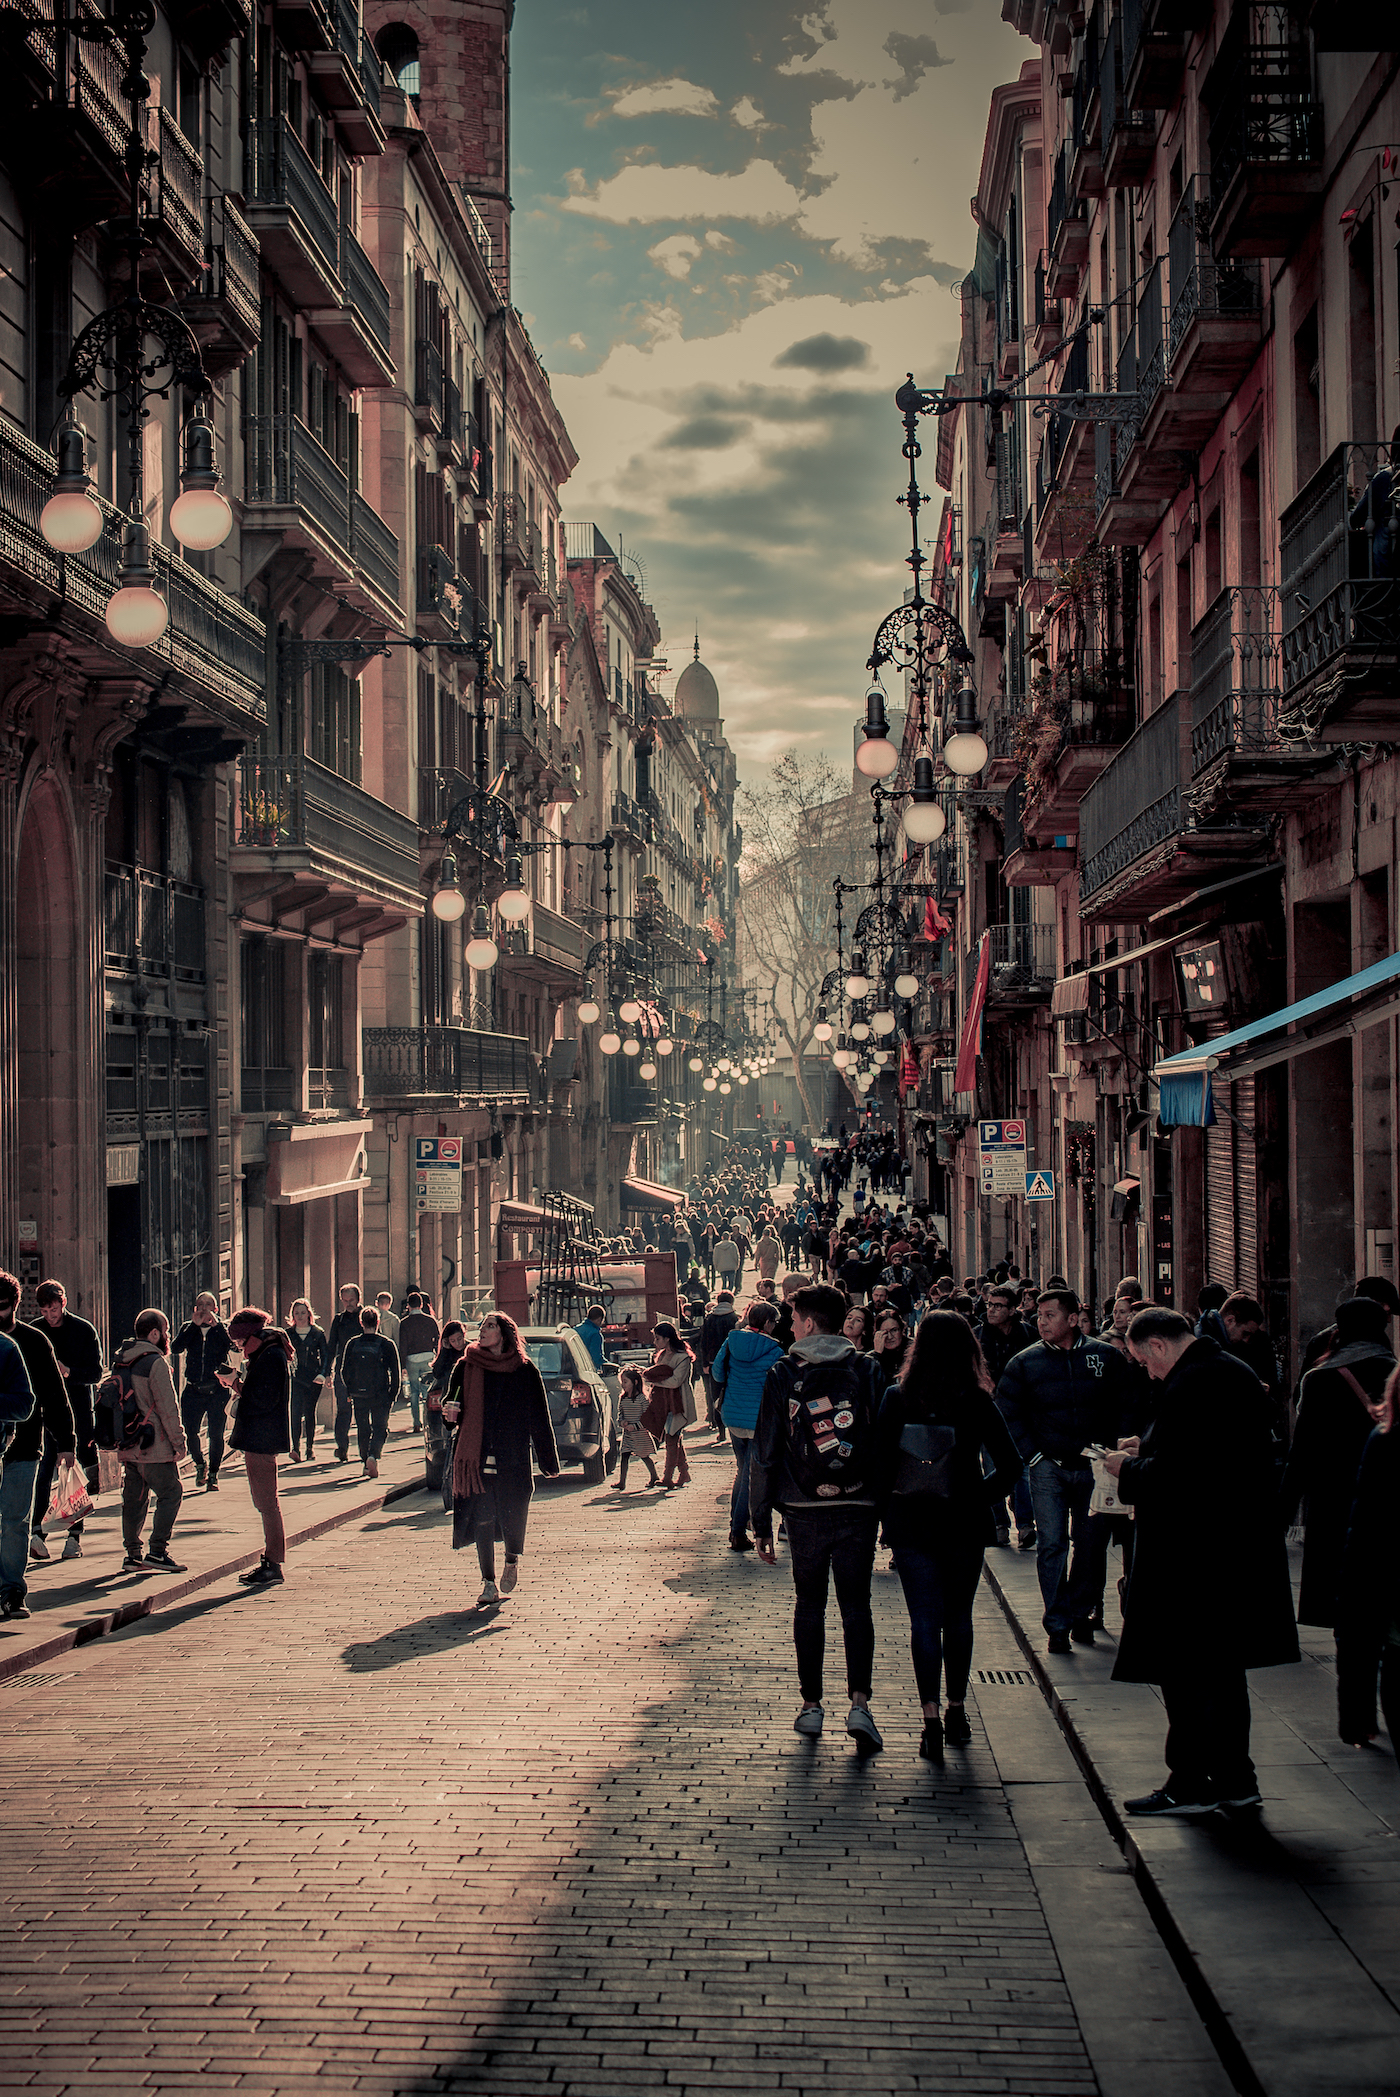 Life and light on Carrer Ferran in Barcelona's Gothic Quarter - by Ben Holbrook